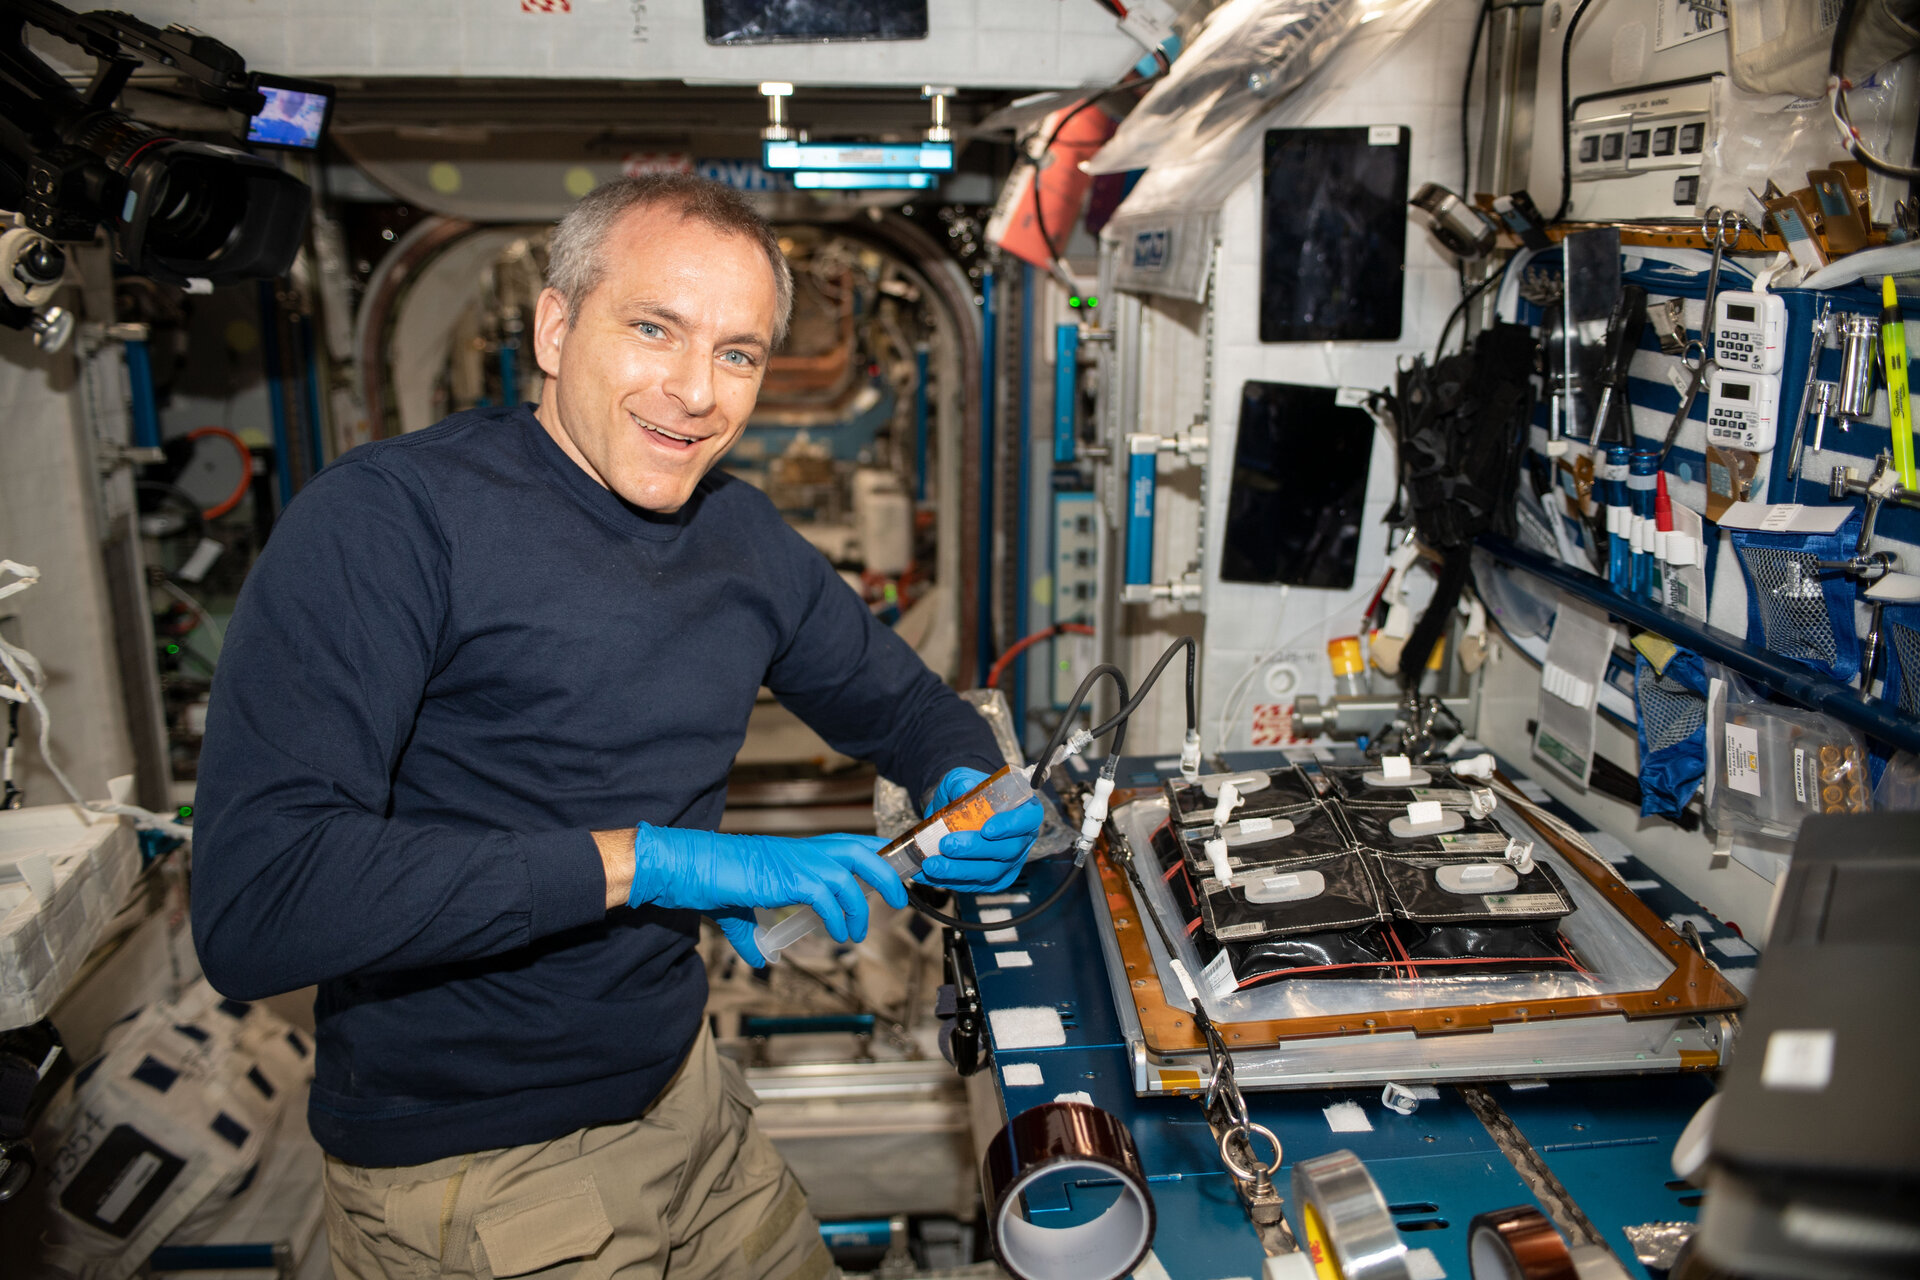 David Saint-Jacques on ISS